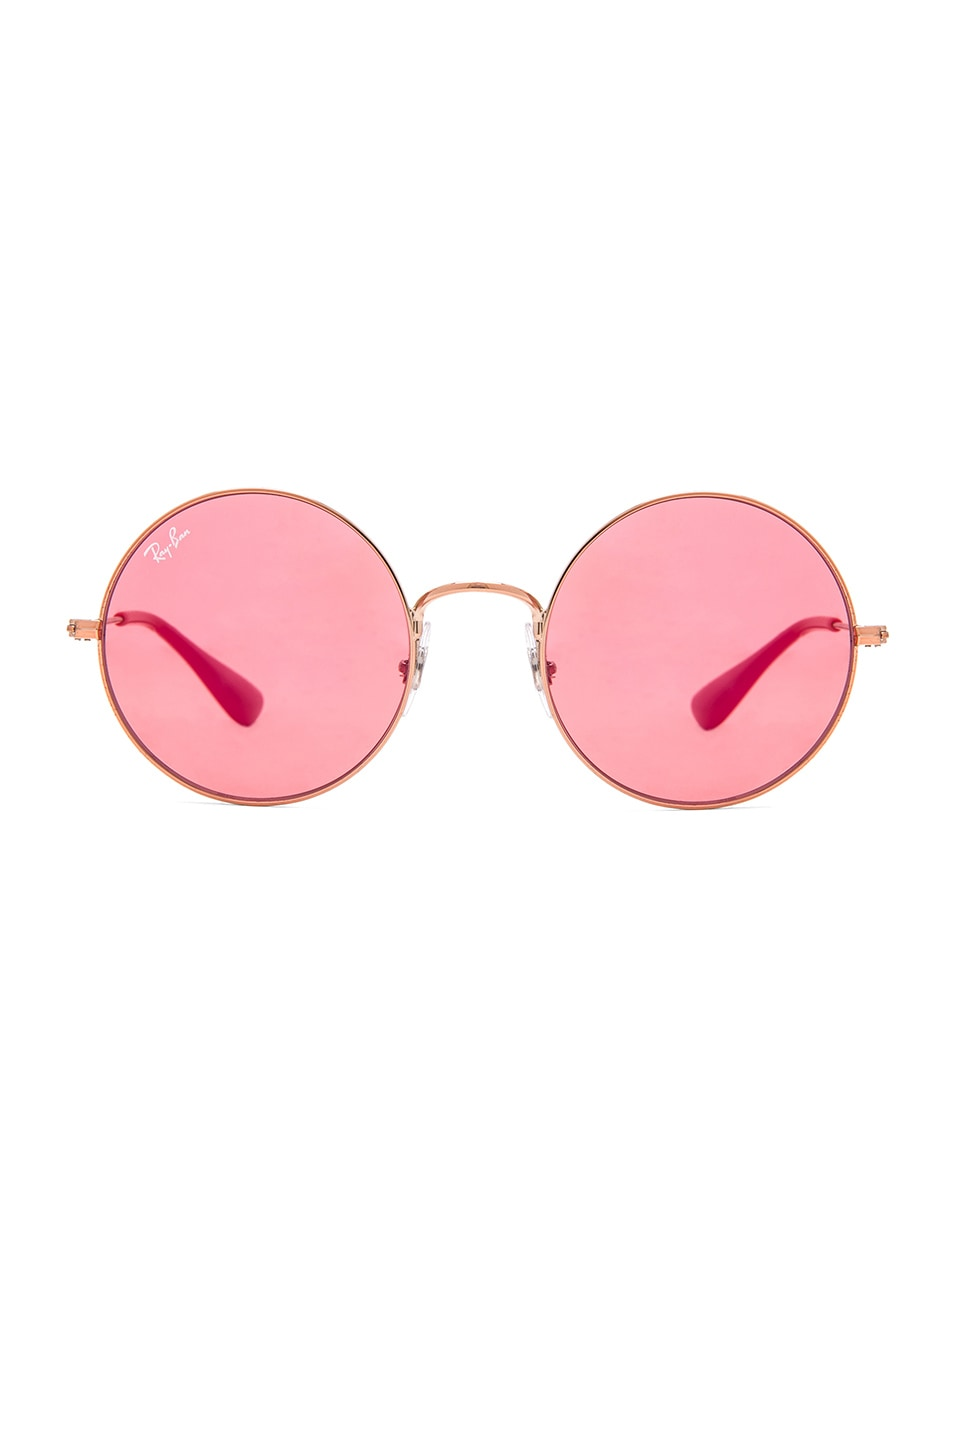 Image 1 of Ray-Ban Round Sunglasses in Shiny Copper